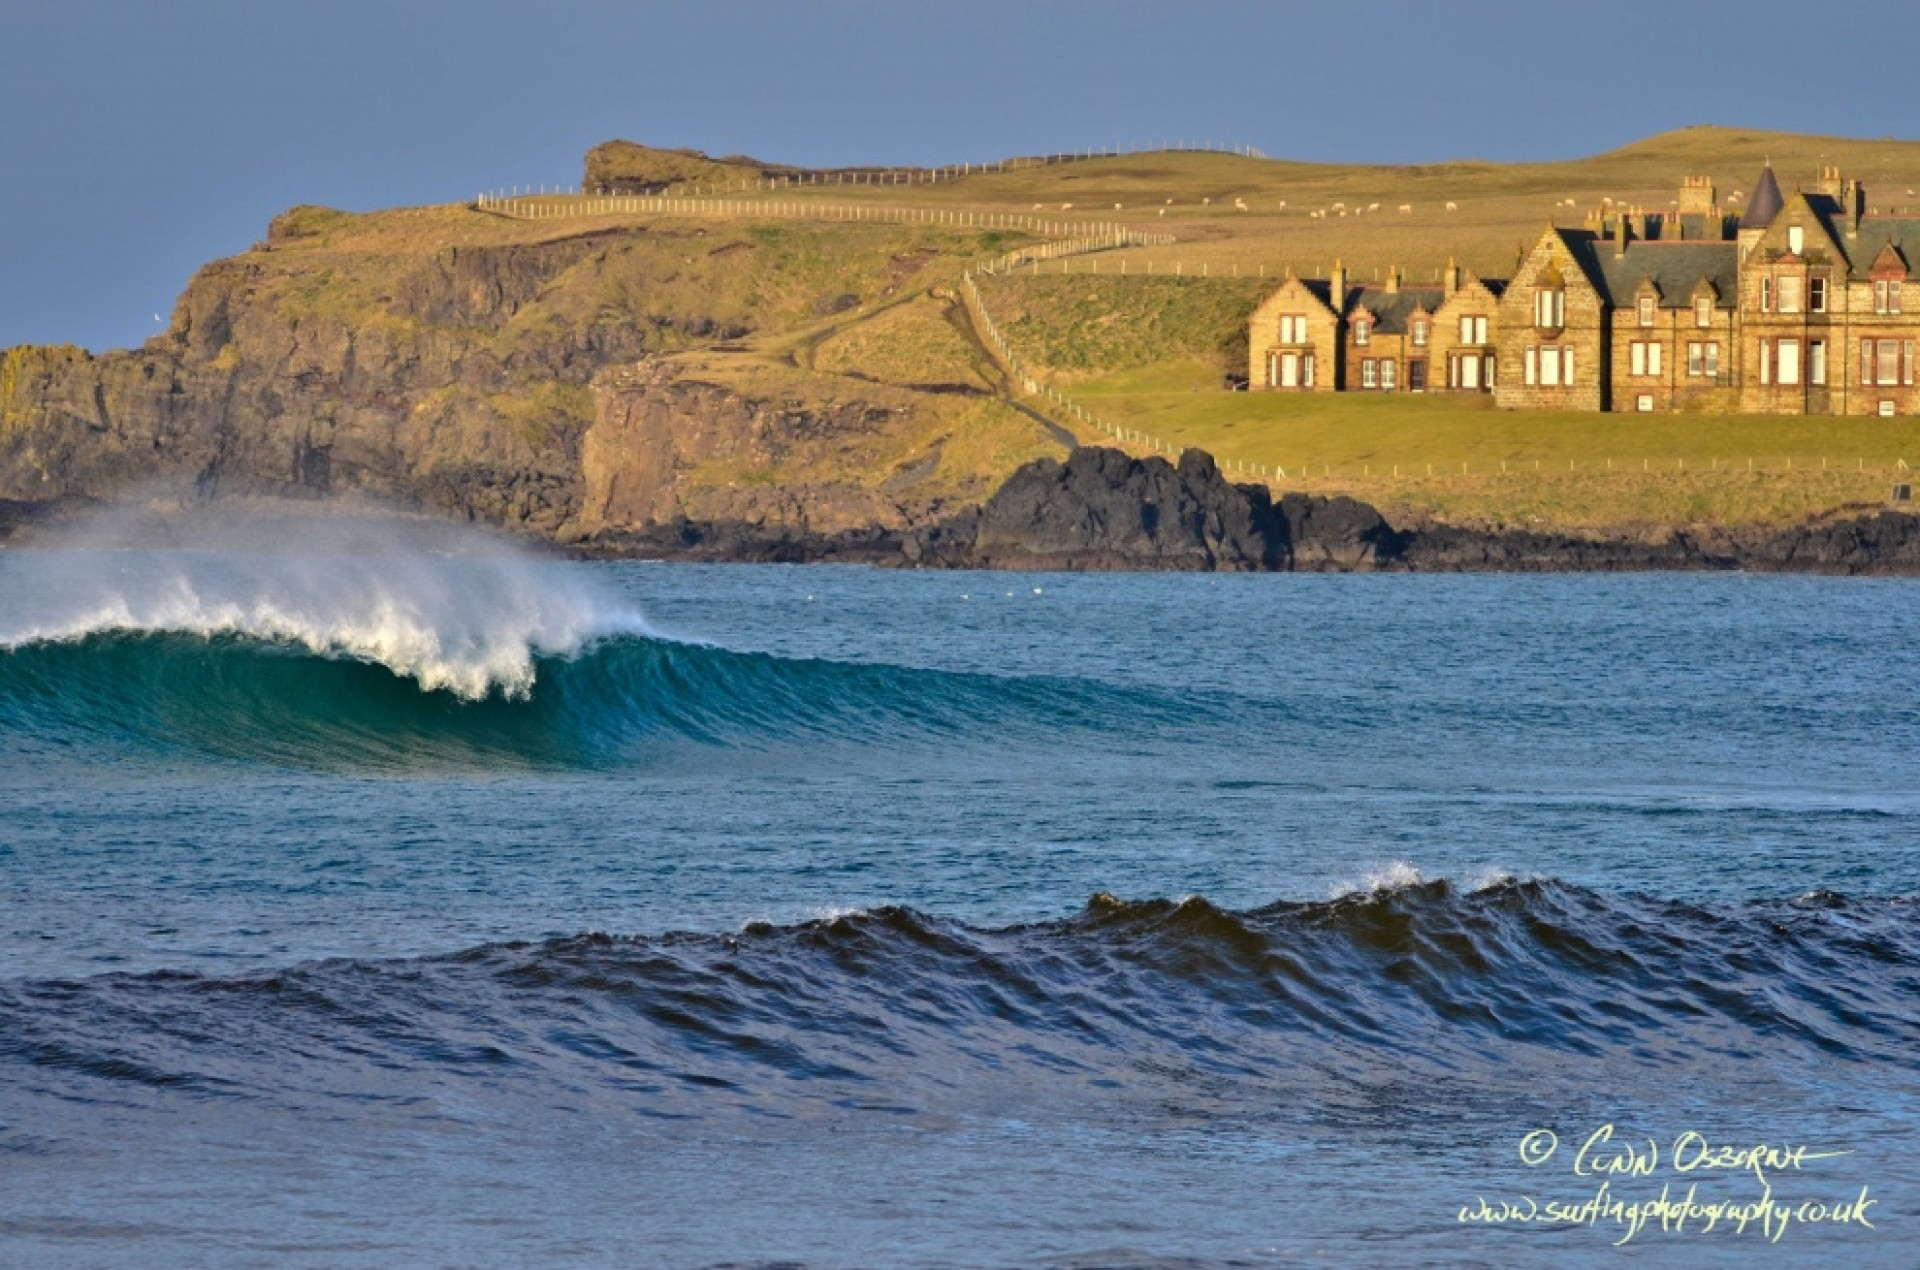 Conn Osborne's photo of Portrush